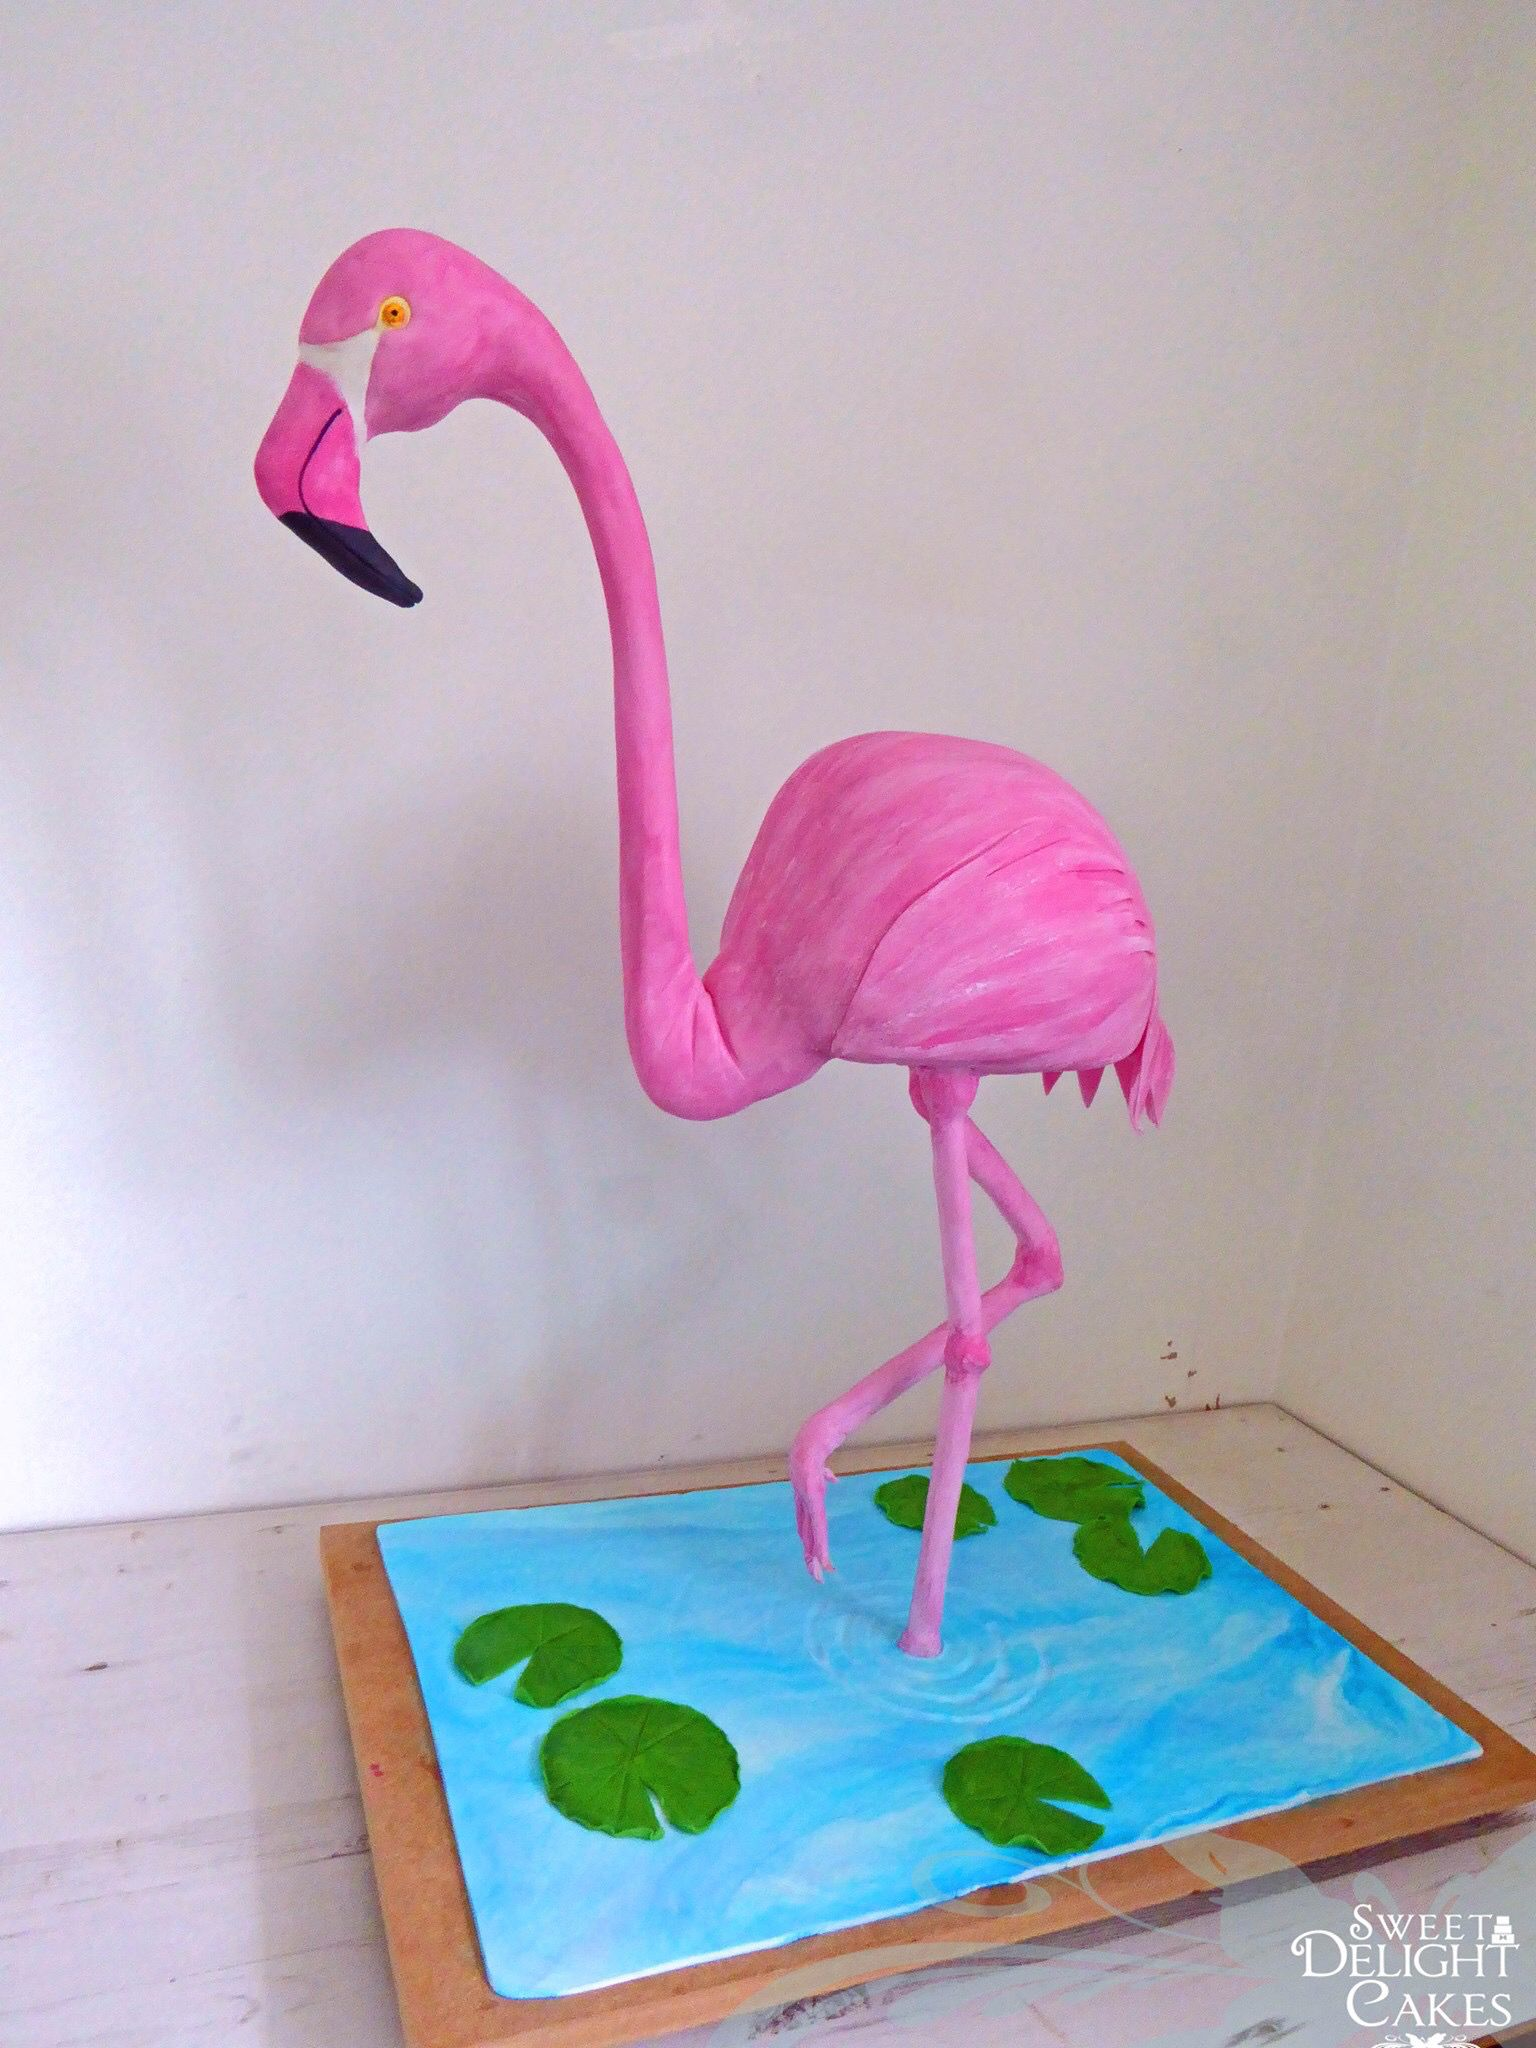 3D structure Flamingo cake made using modelling chocolate and sugar ...